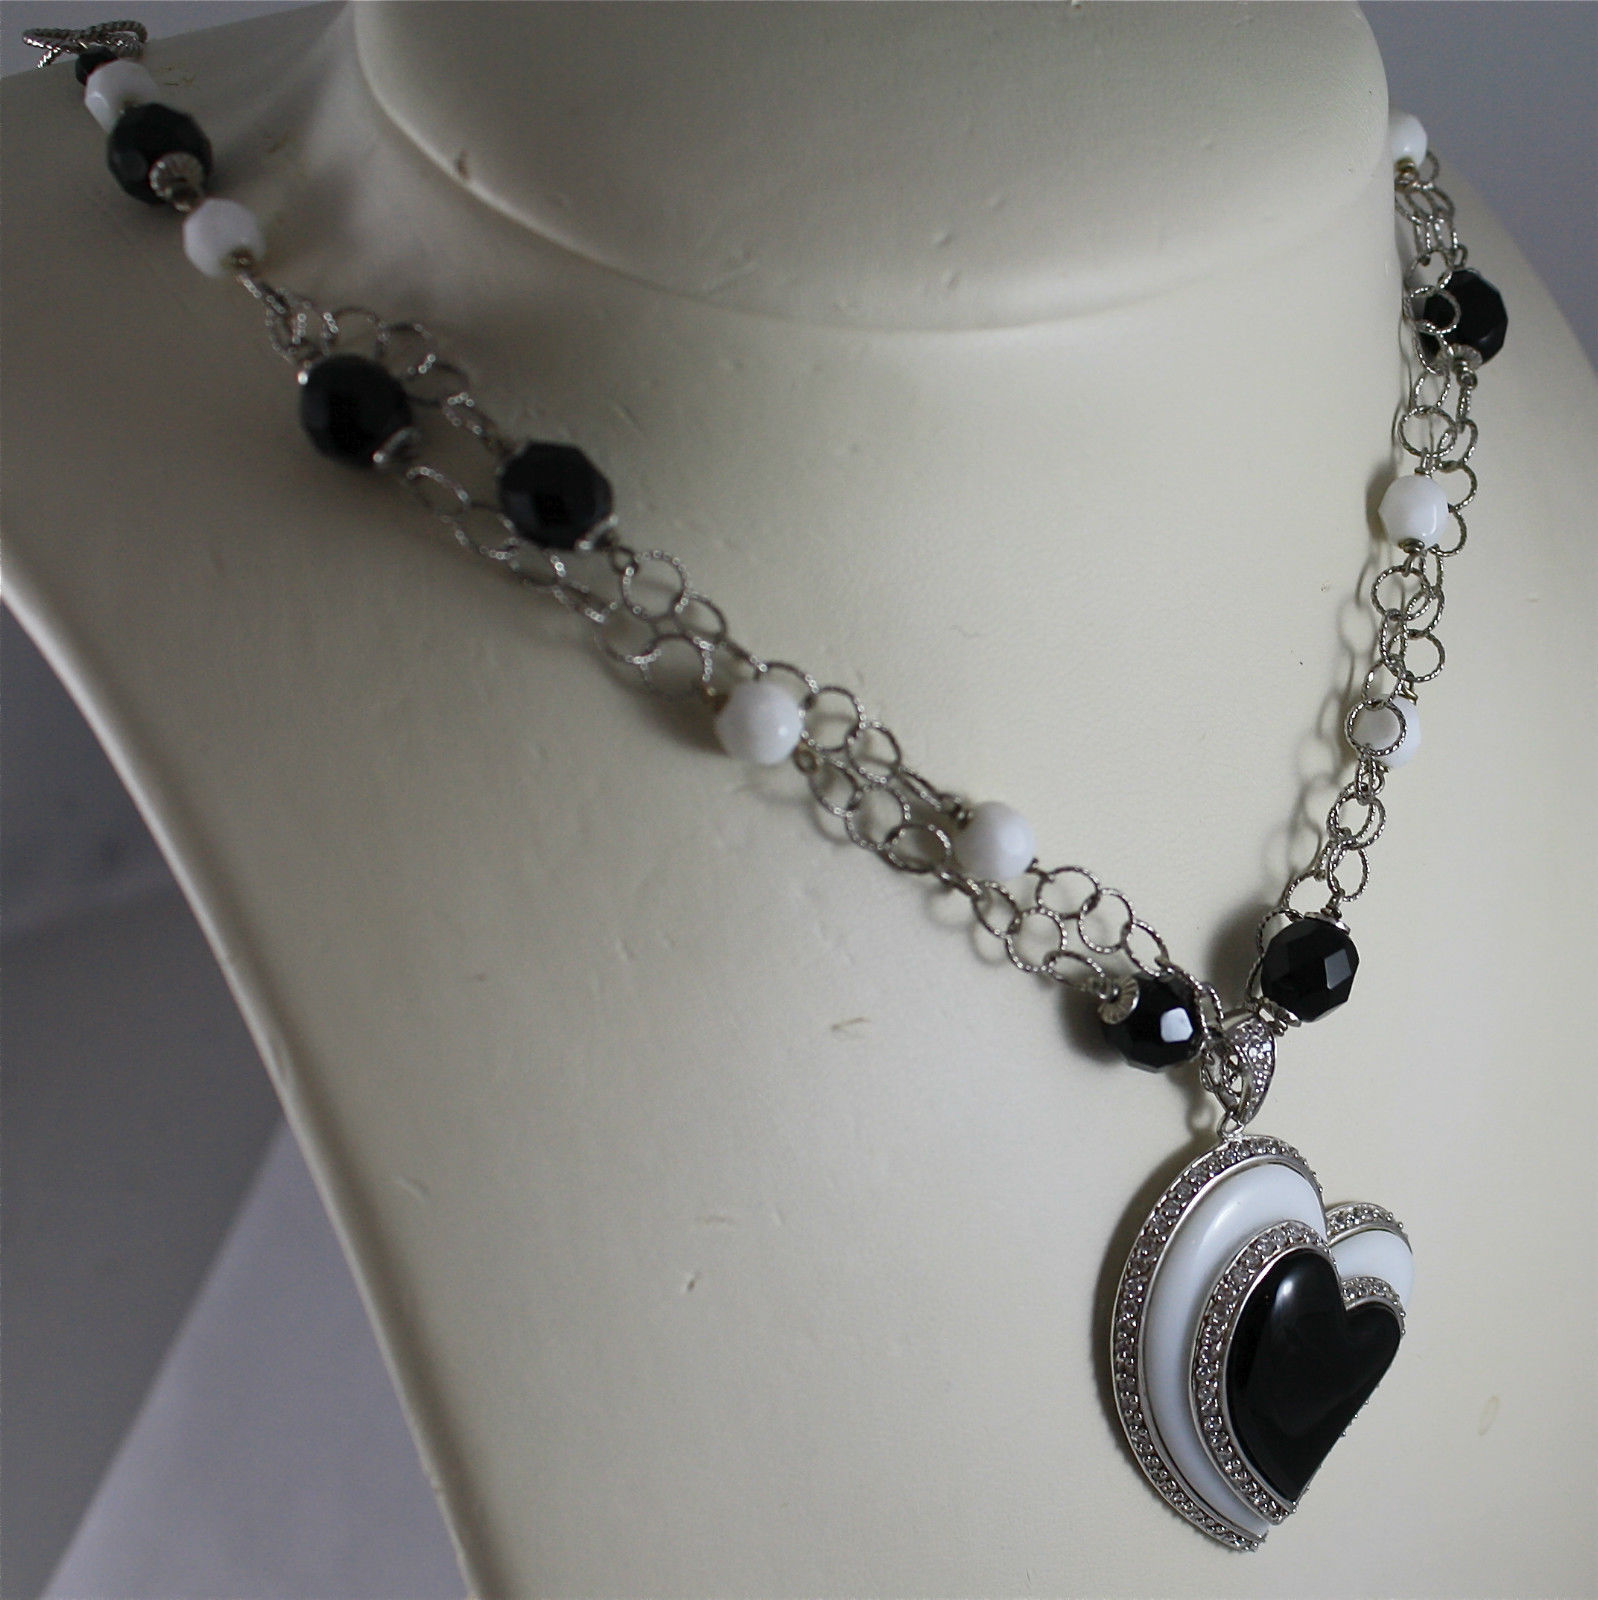 .925 RHODIUM SILVER NECKLACE, WHITE AGATE AND BLACK ONYX, CENTRAL HEART PENDANT.